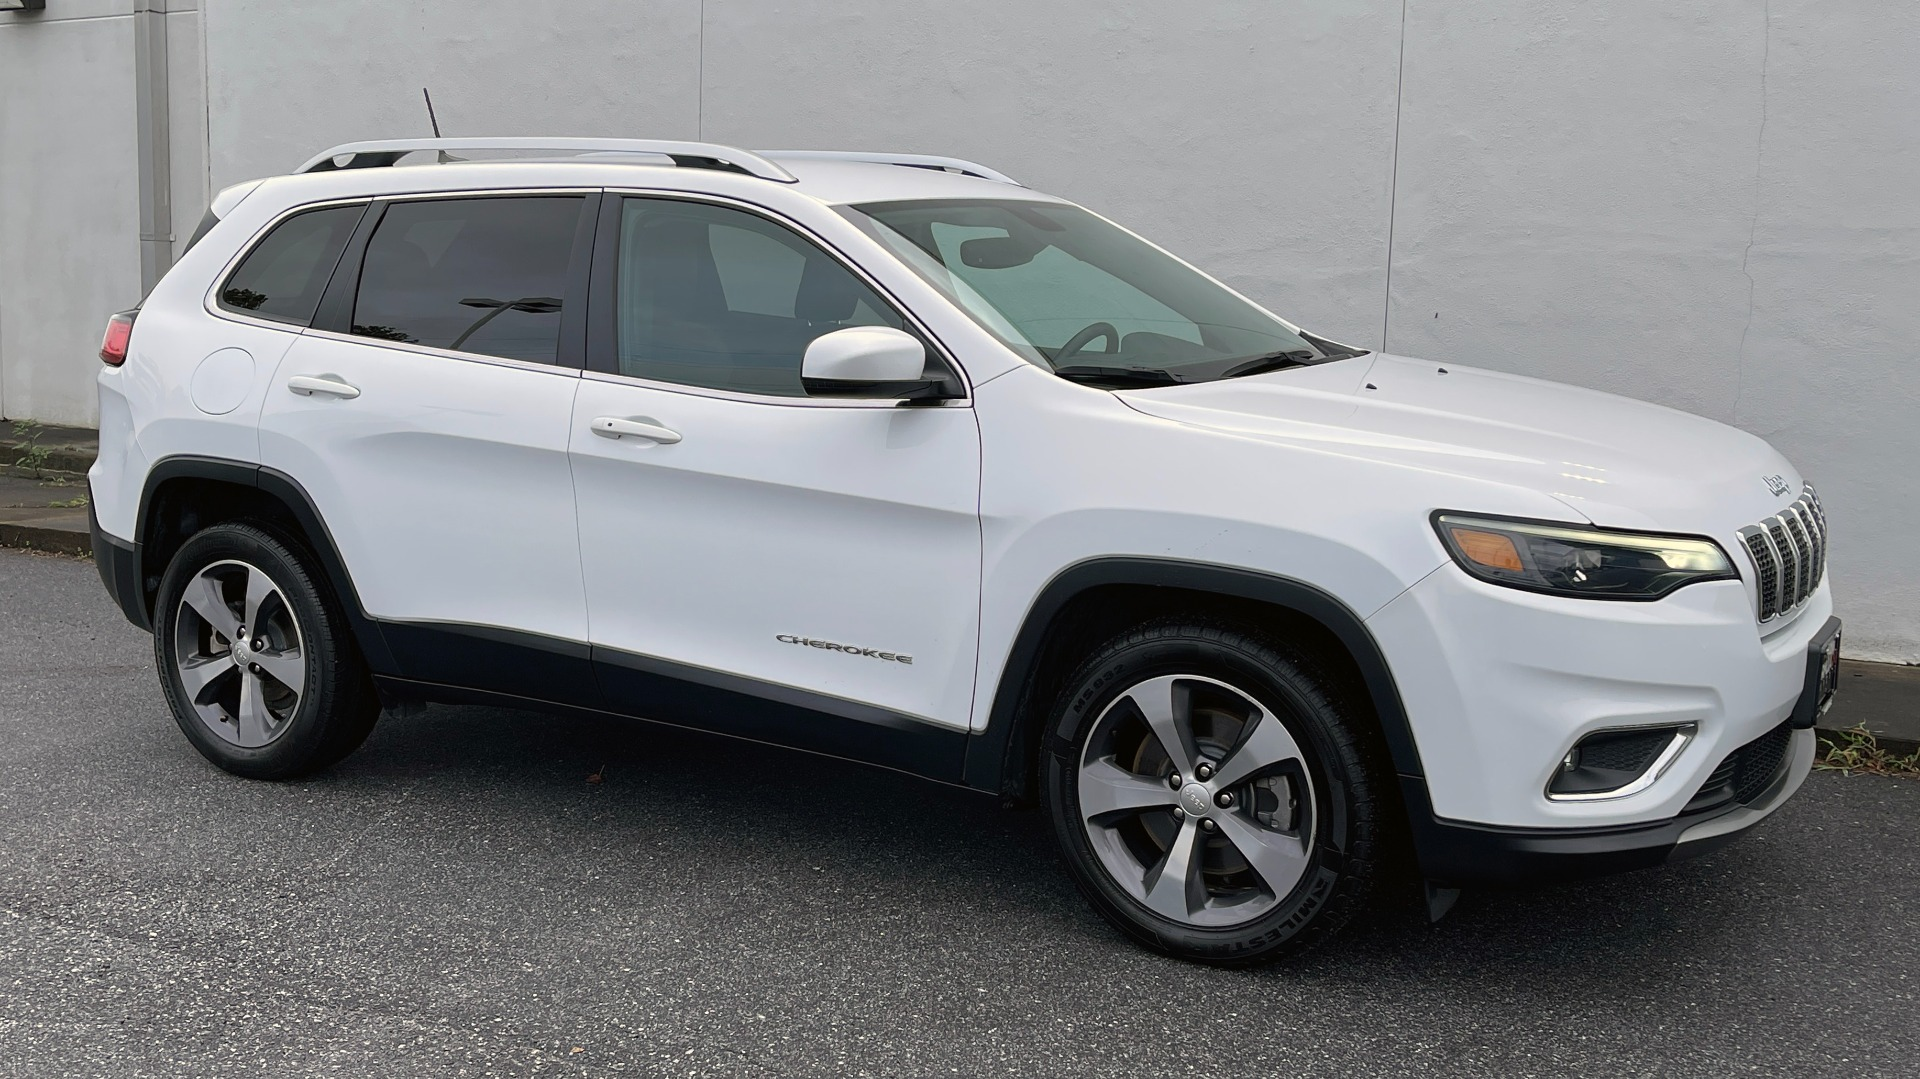 Used 2019 Jeep CHEROKEE LIMITED 2.4L / FWD / APPLE CARPLAY / KEYLESS-GO / REARVIEW for sale $24,395 at Formula Imports in Charlotte NC 28227 4